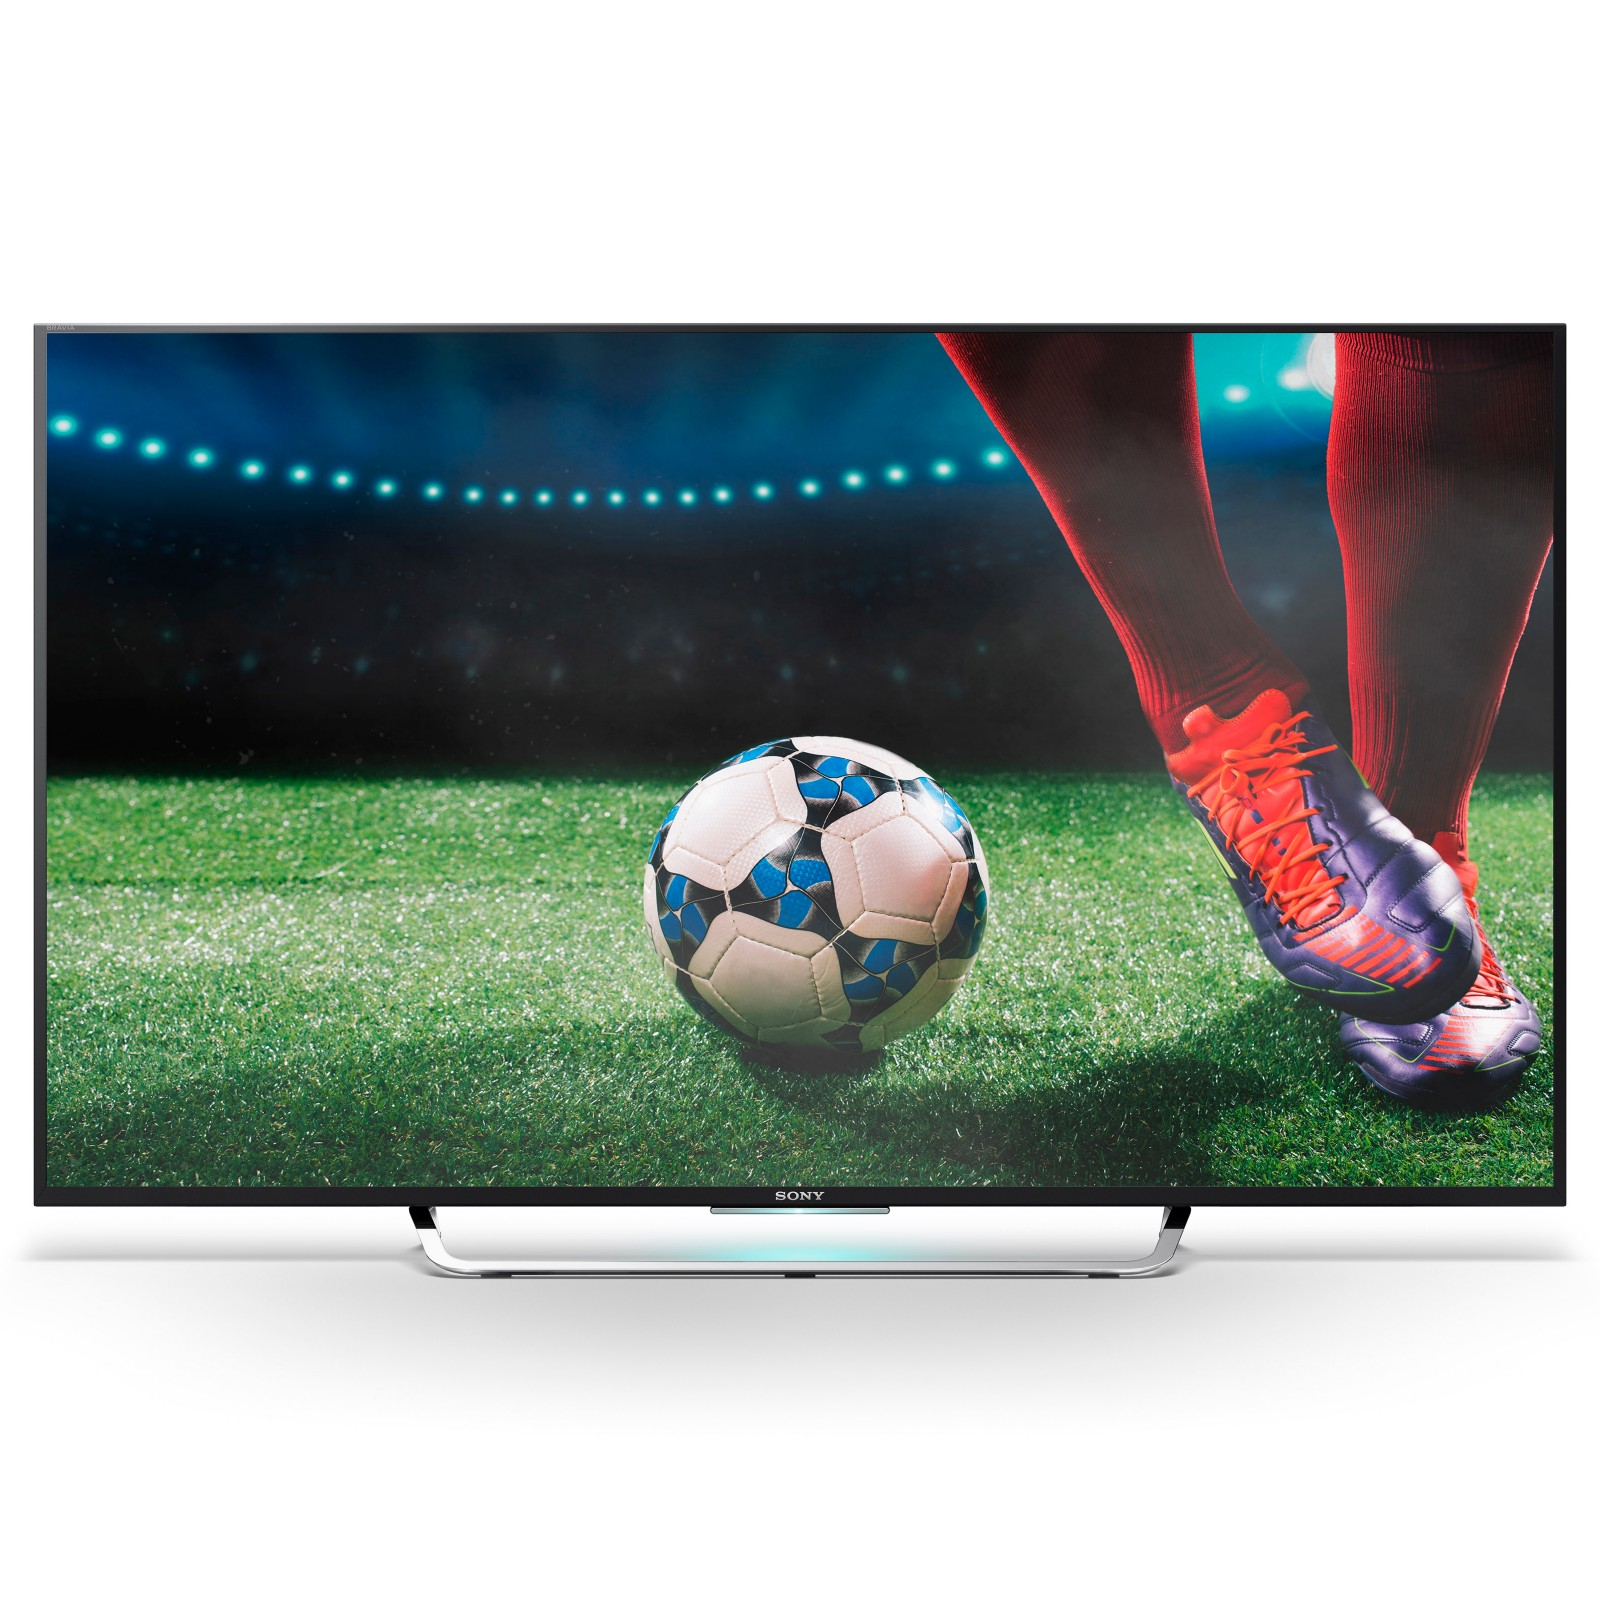 Sony Bravia KD55X85 LED HDR 4K Ultra HD 3D Android TV